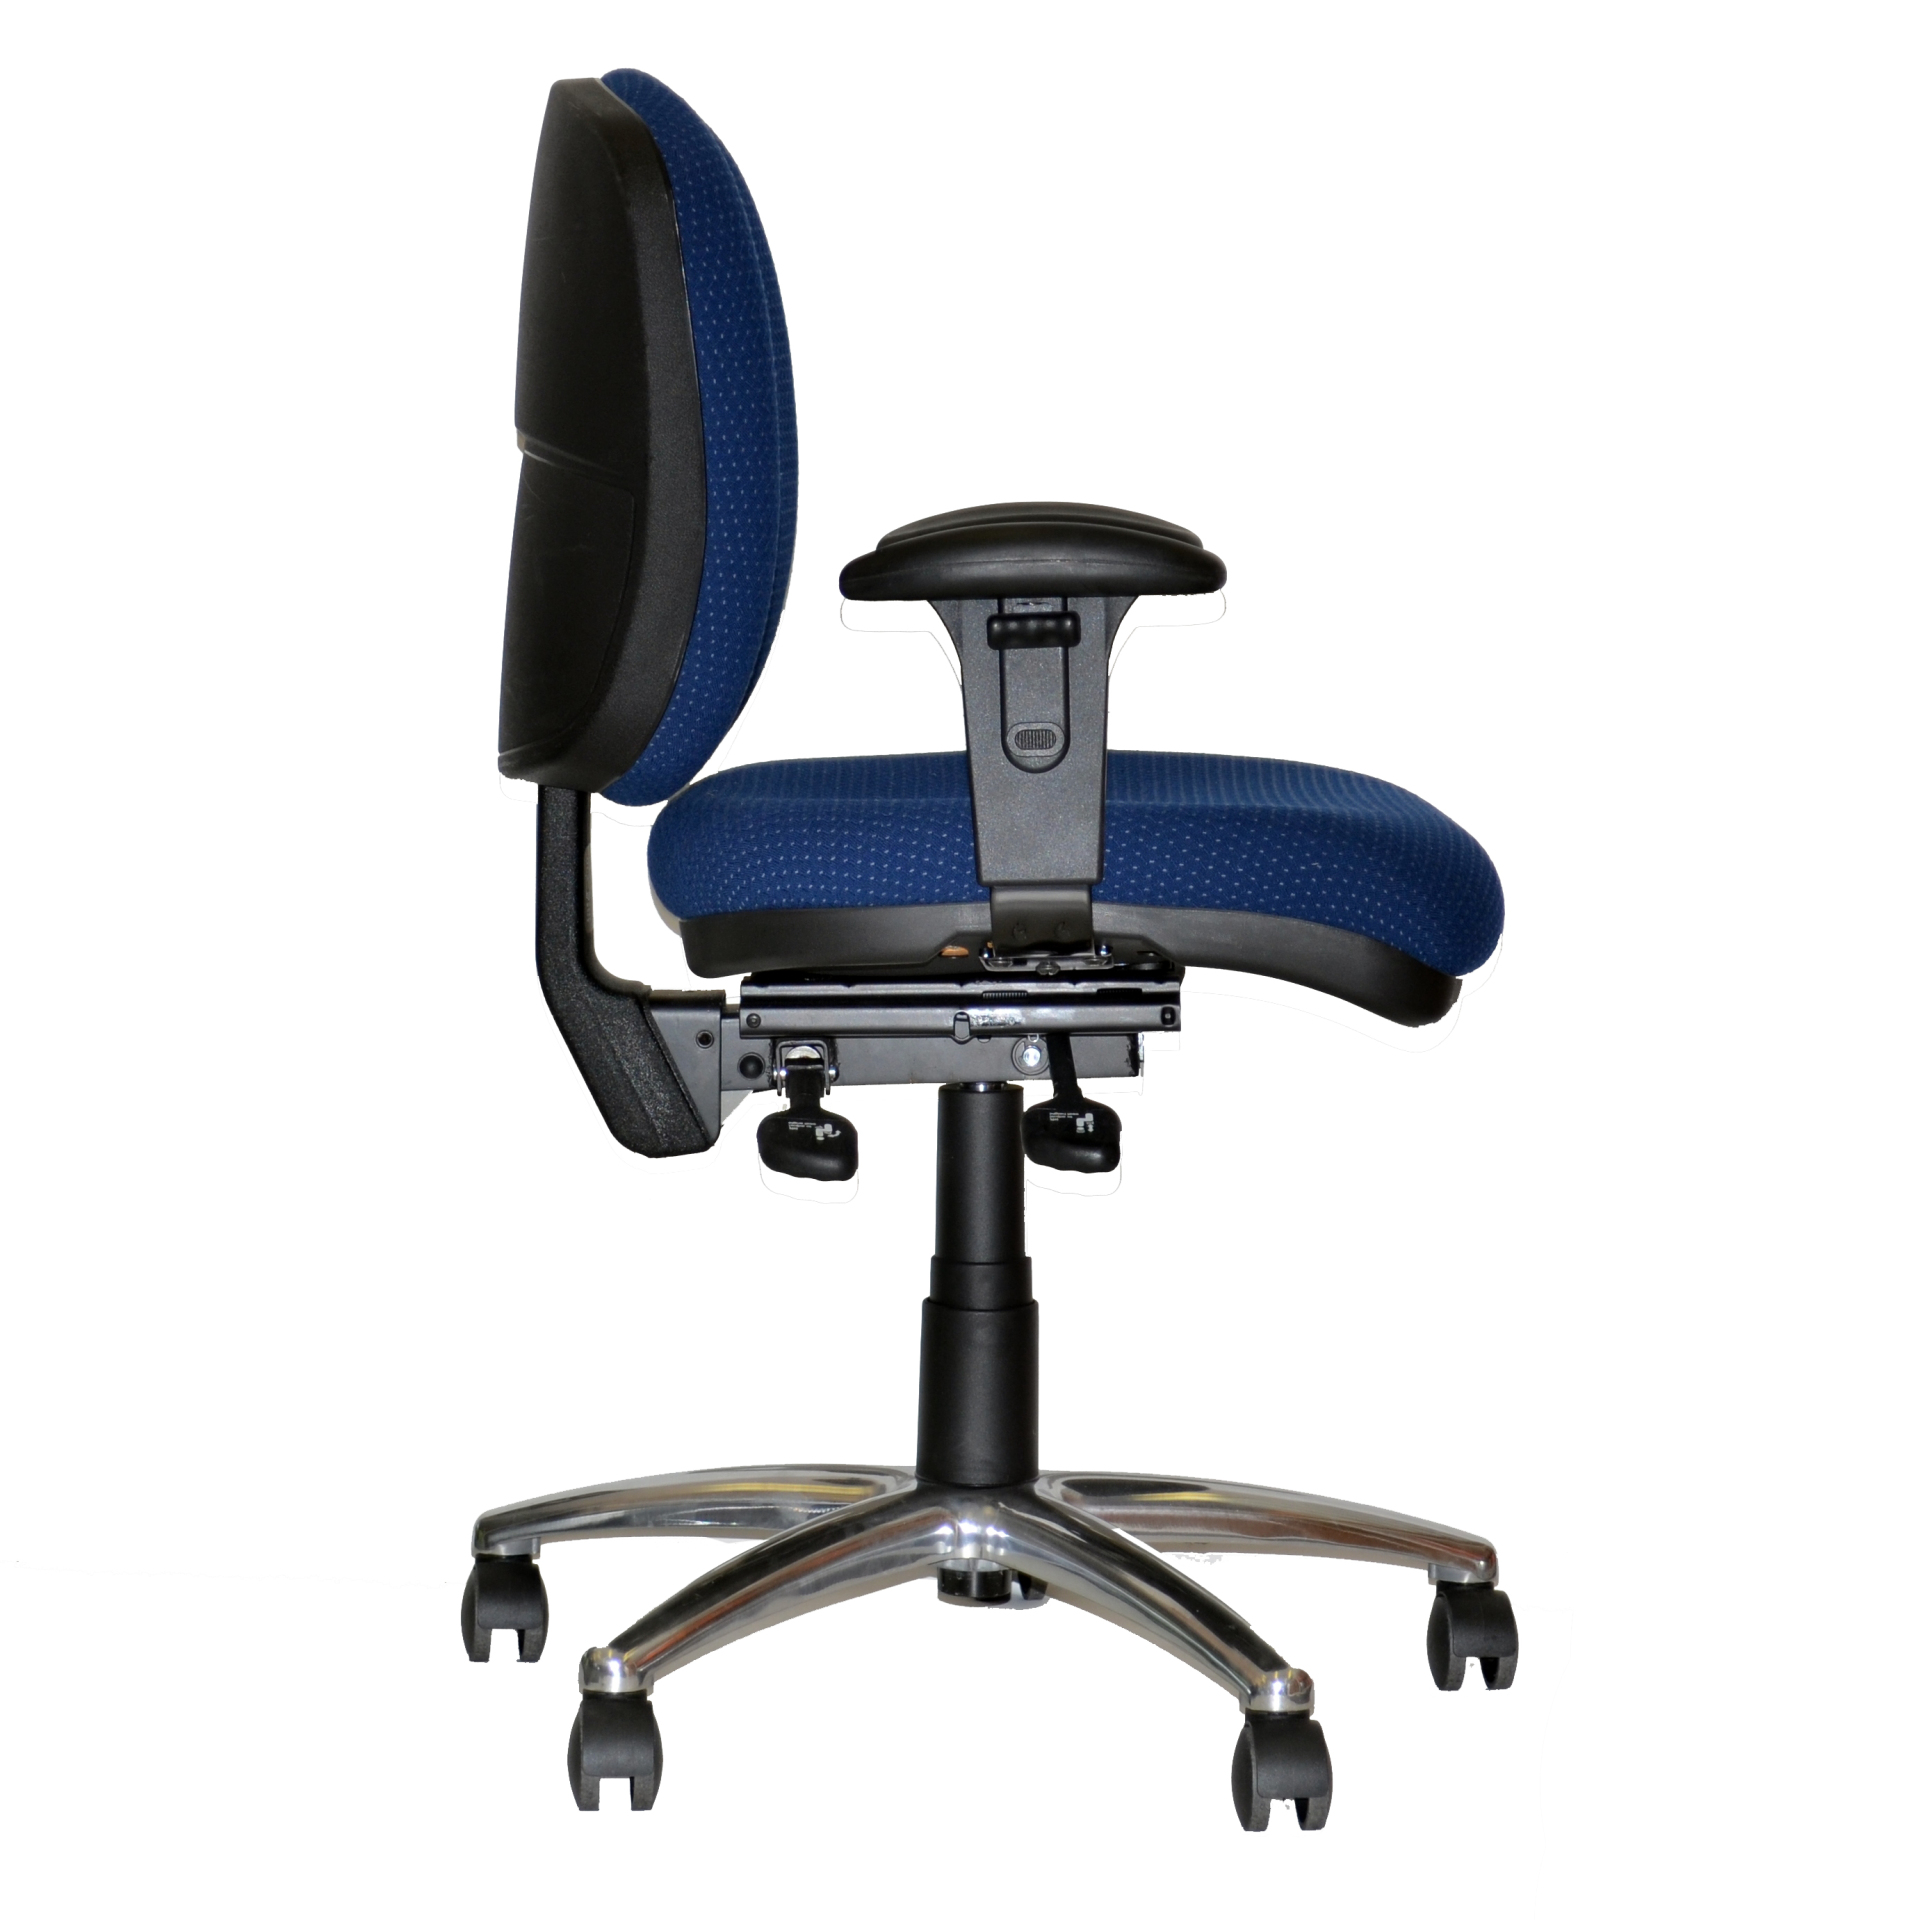 Direct Ergonomics | Sydney Office Furniture | Ergonomic Furniture | Ergonomic Seating | Excutive and Task Seating | Meeting Room Chair | Ezone Wide Boy